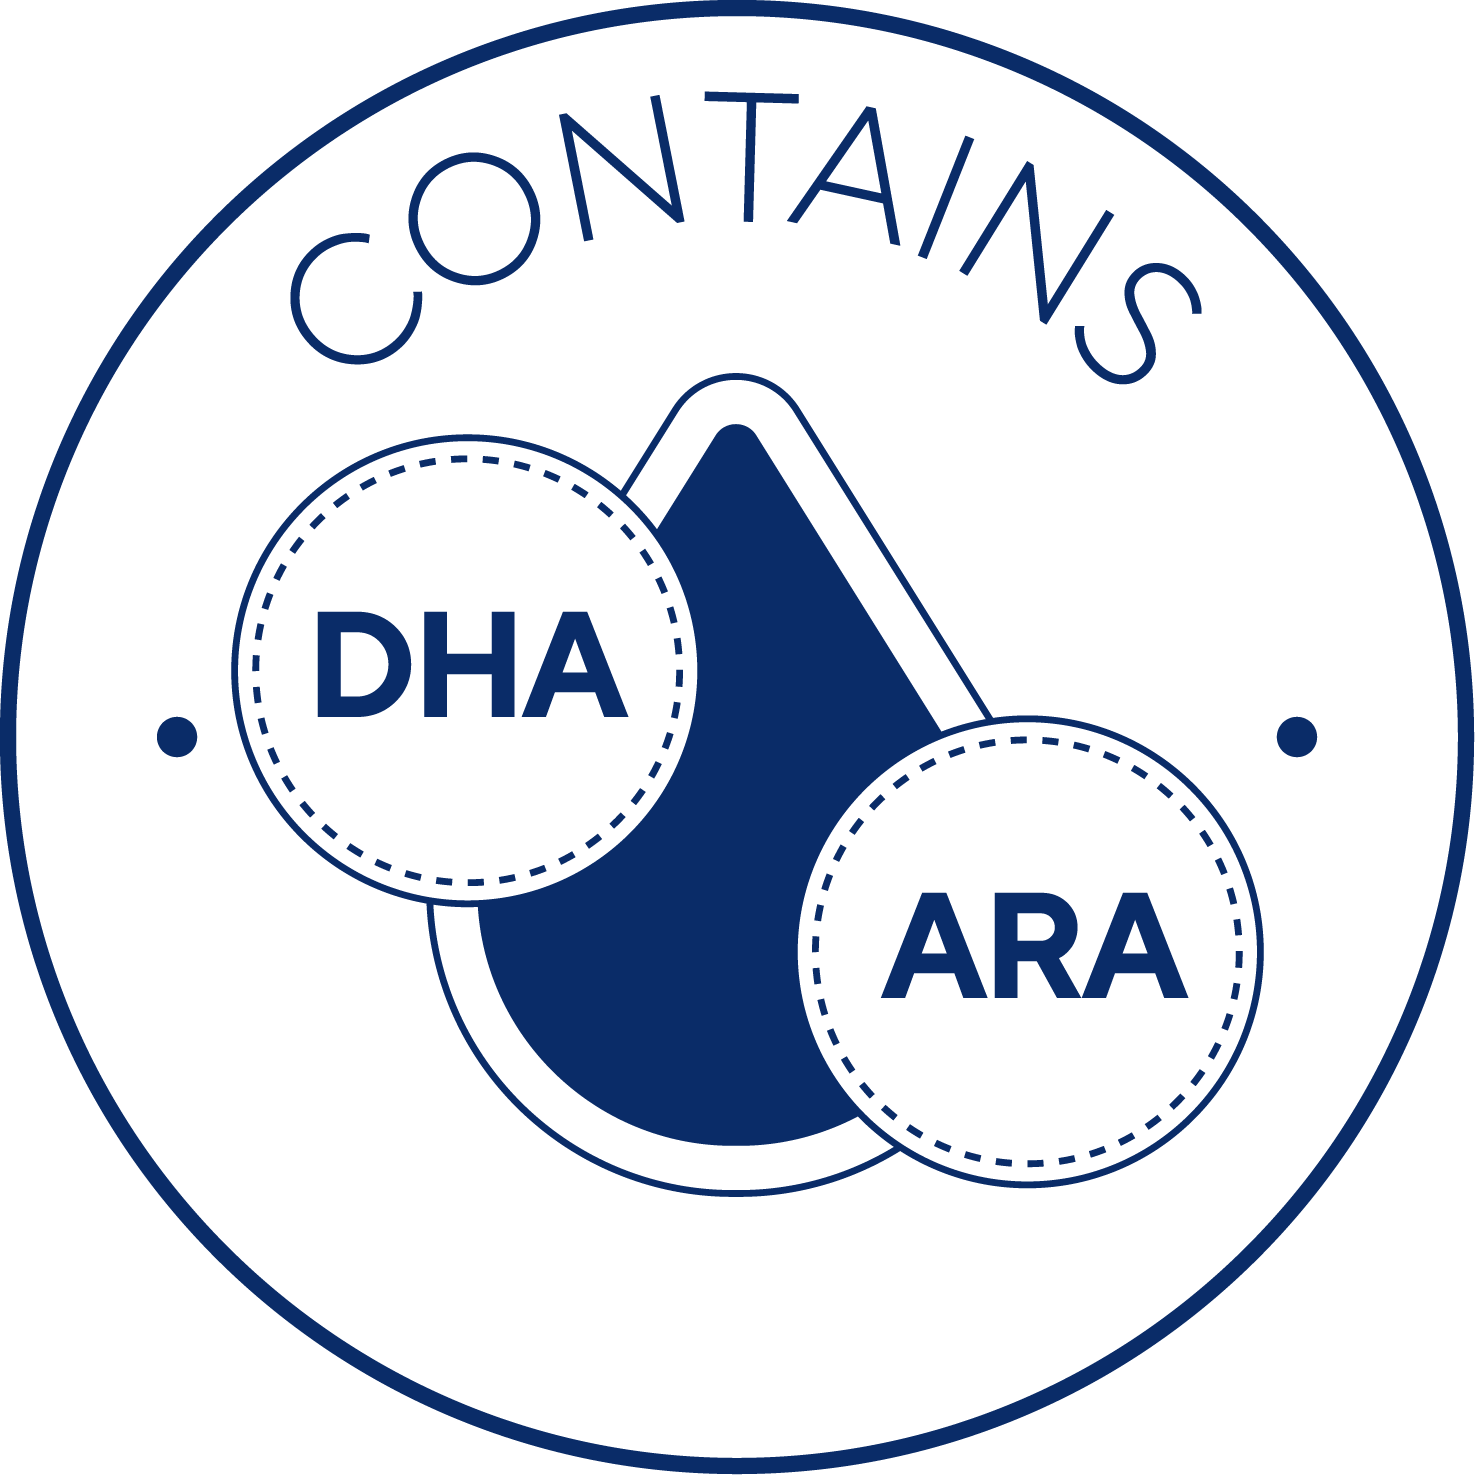 Contains DHA and ARA